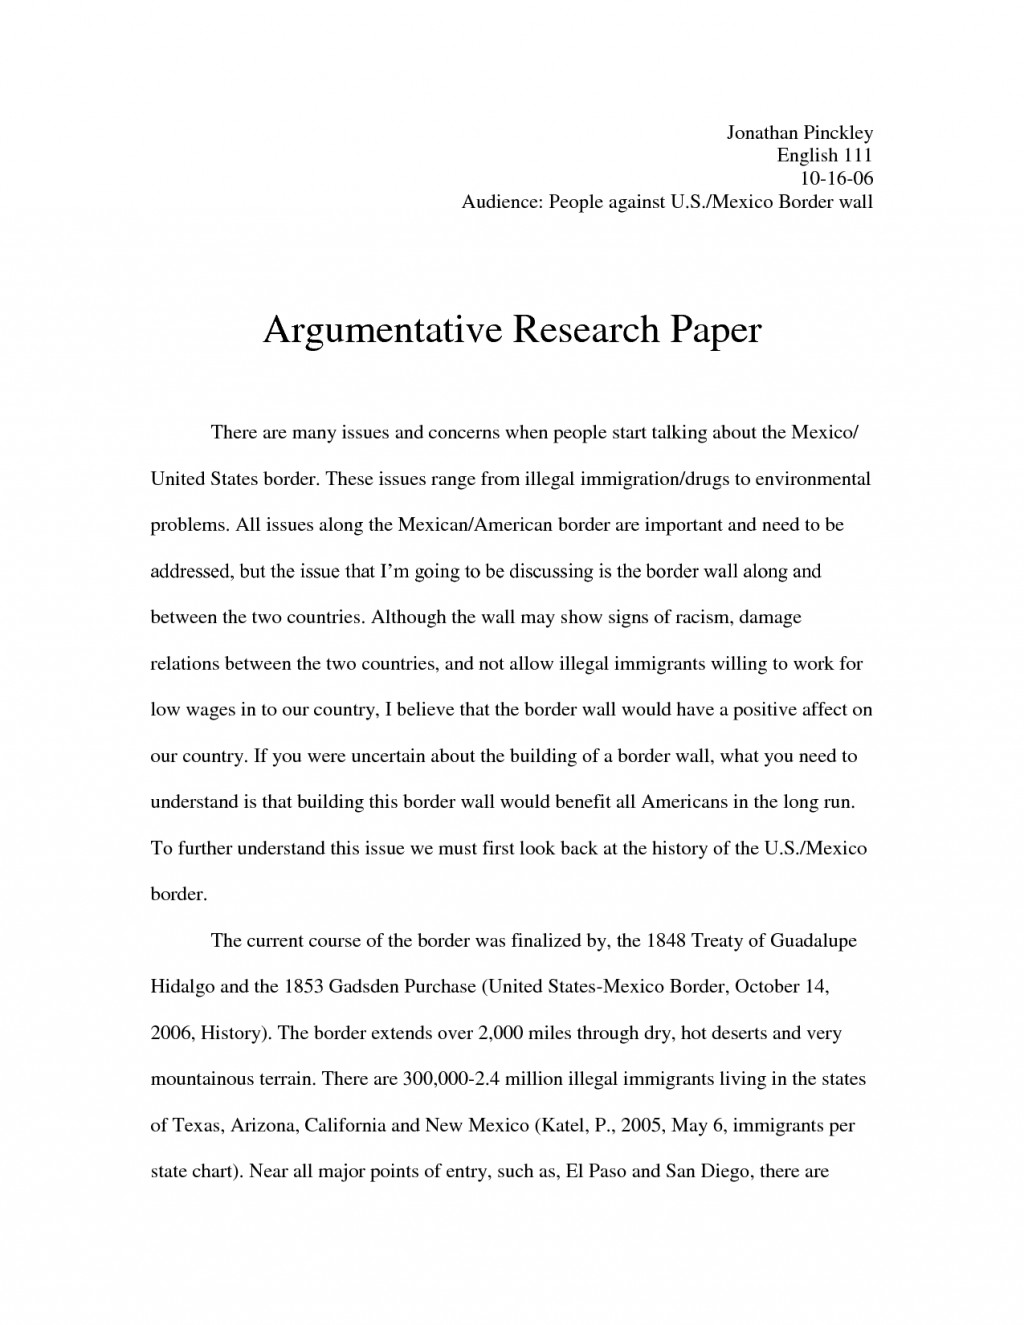 014 Uncategorized Debate20y Argumentative Thesis High School Topics Sentence Starters Outline Worksheet Structure20 For Research Rare A Paper Medical Interesting Large